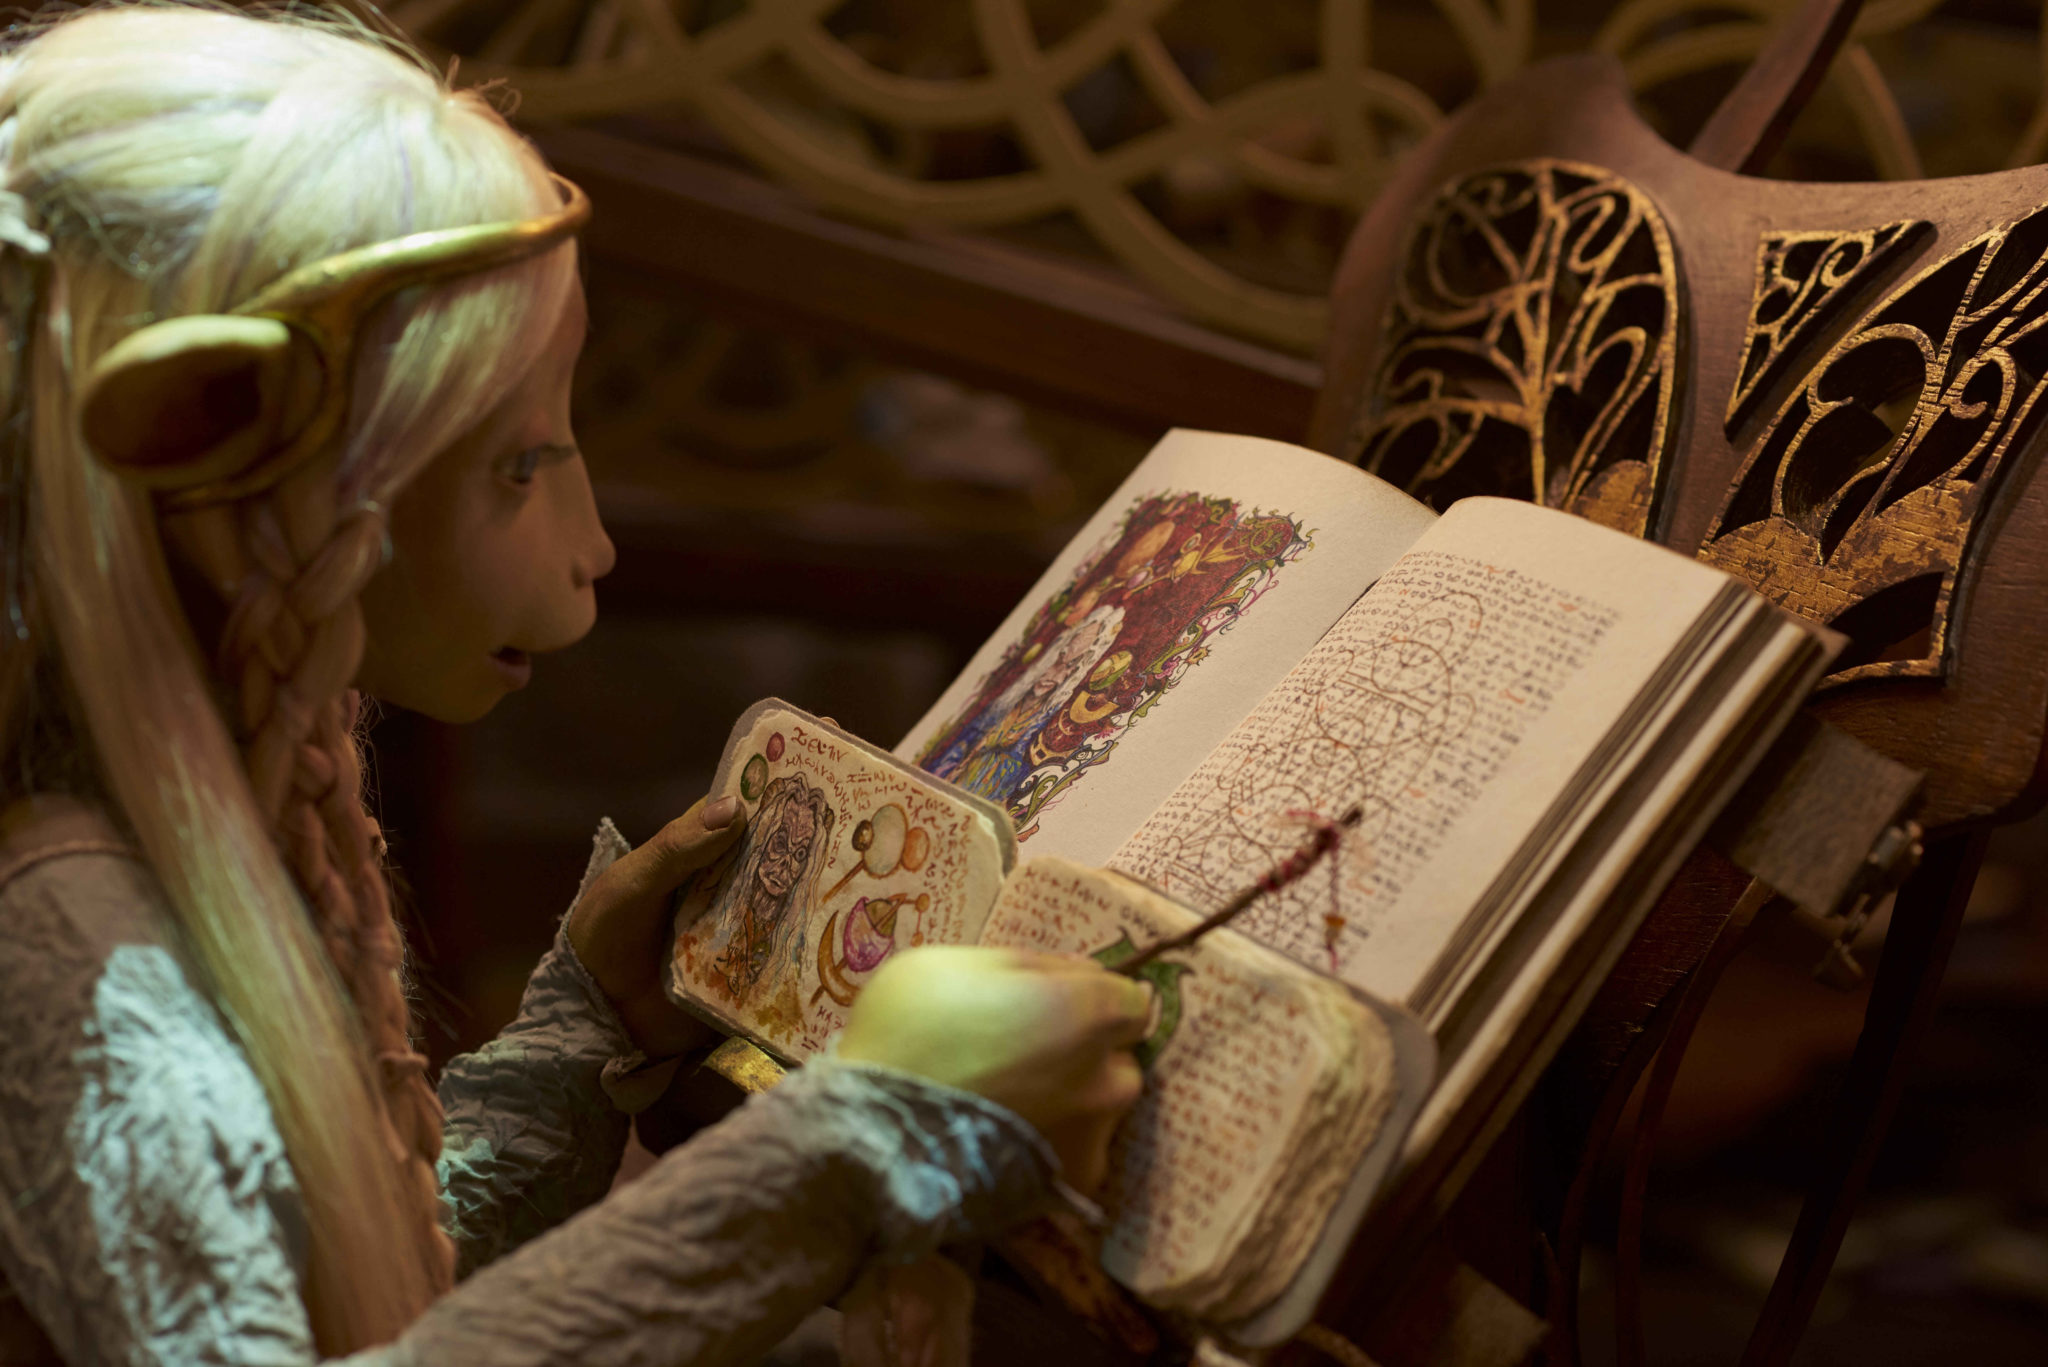 A scene from The Dark Crystal: Age of Resistance episode 1